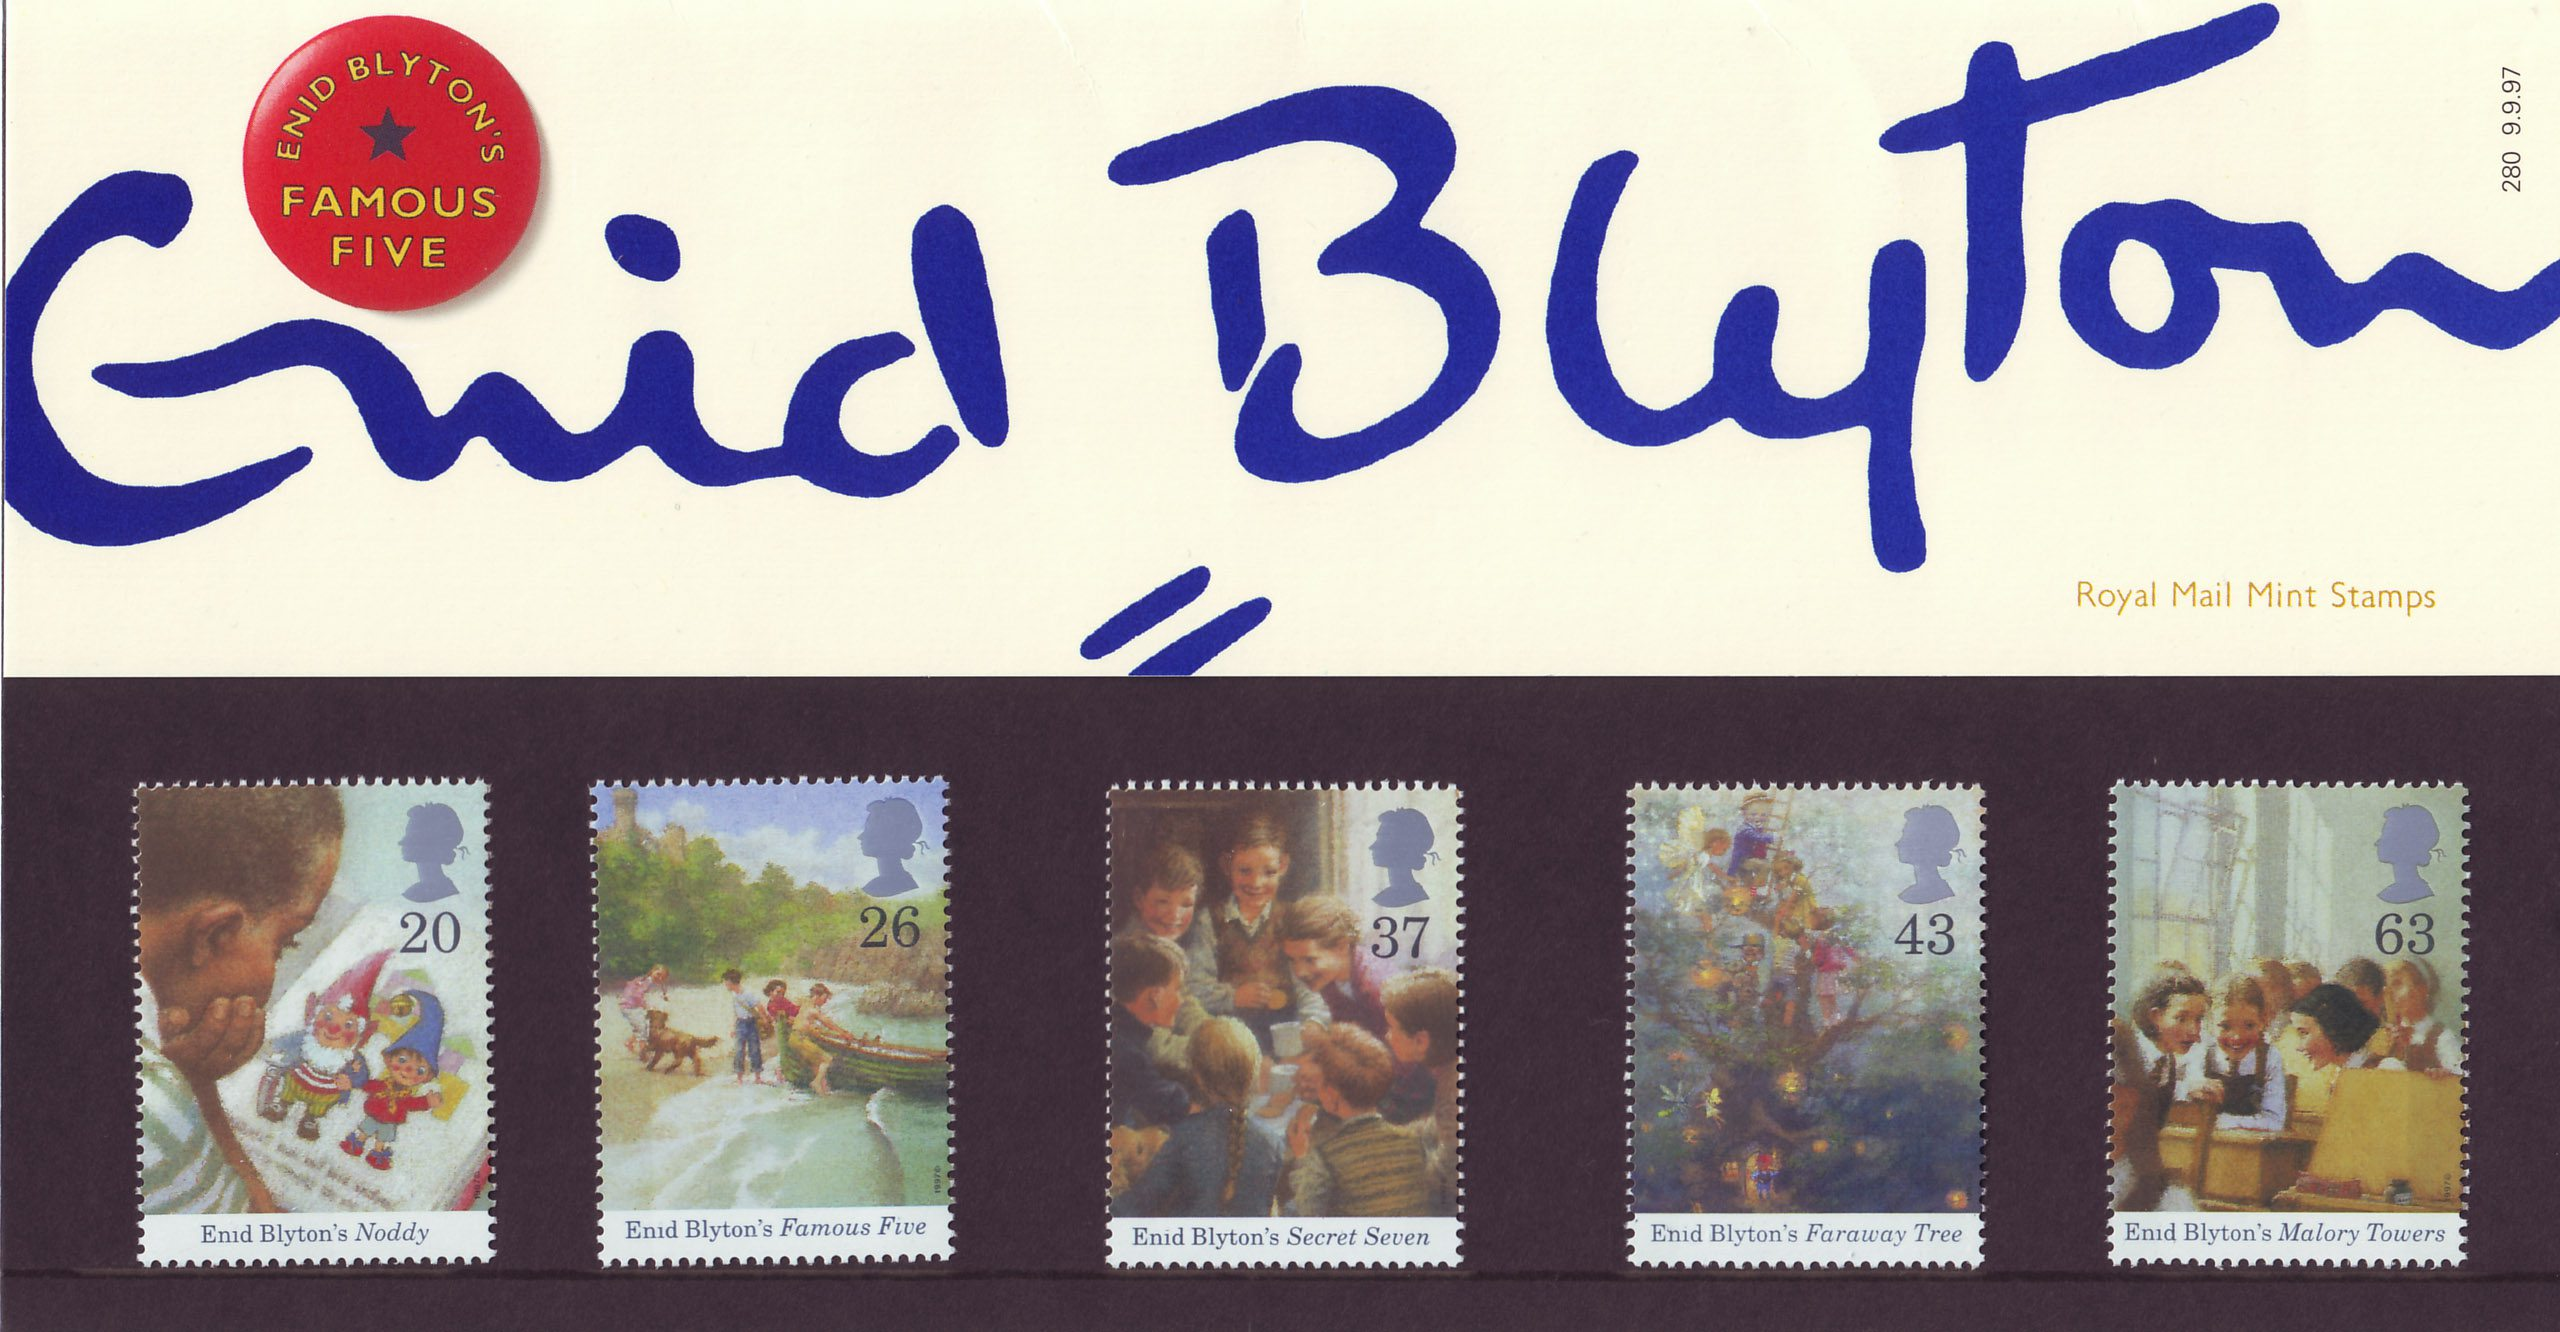 Enid Blyton 1997 Collect Gb Stamps